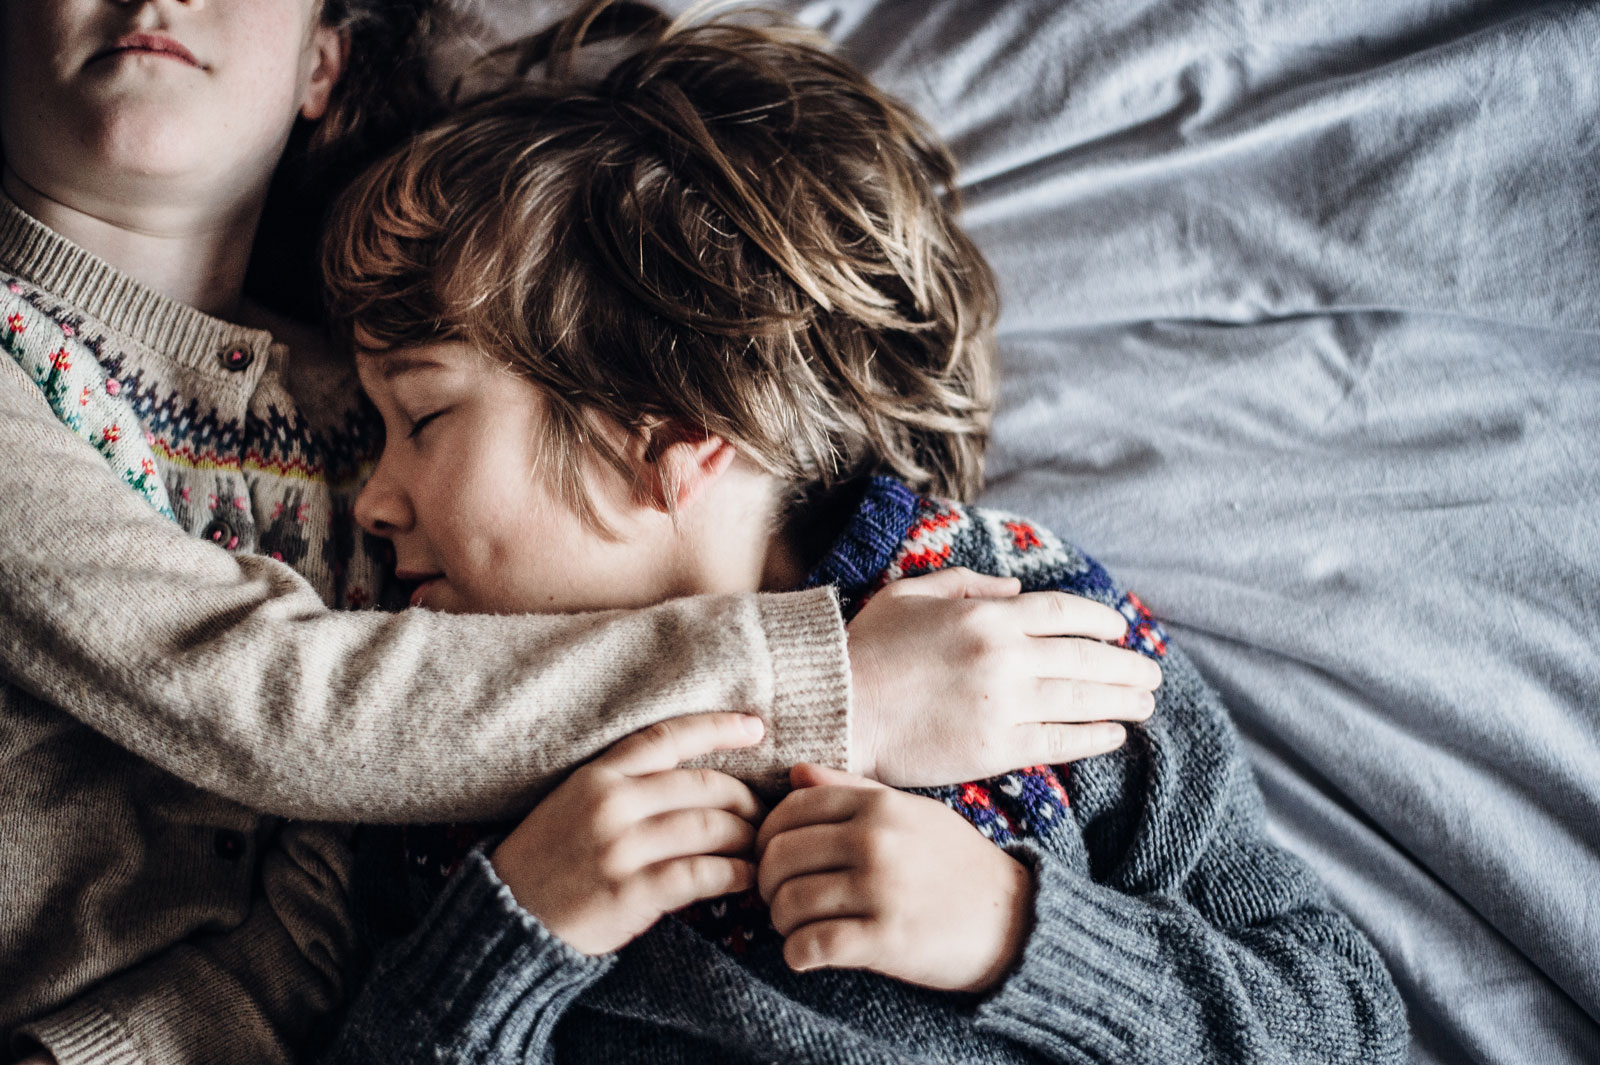 Sister Hugging Her Brother | How To Prepare Your Firstborn For A New Baby Sibling